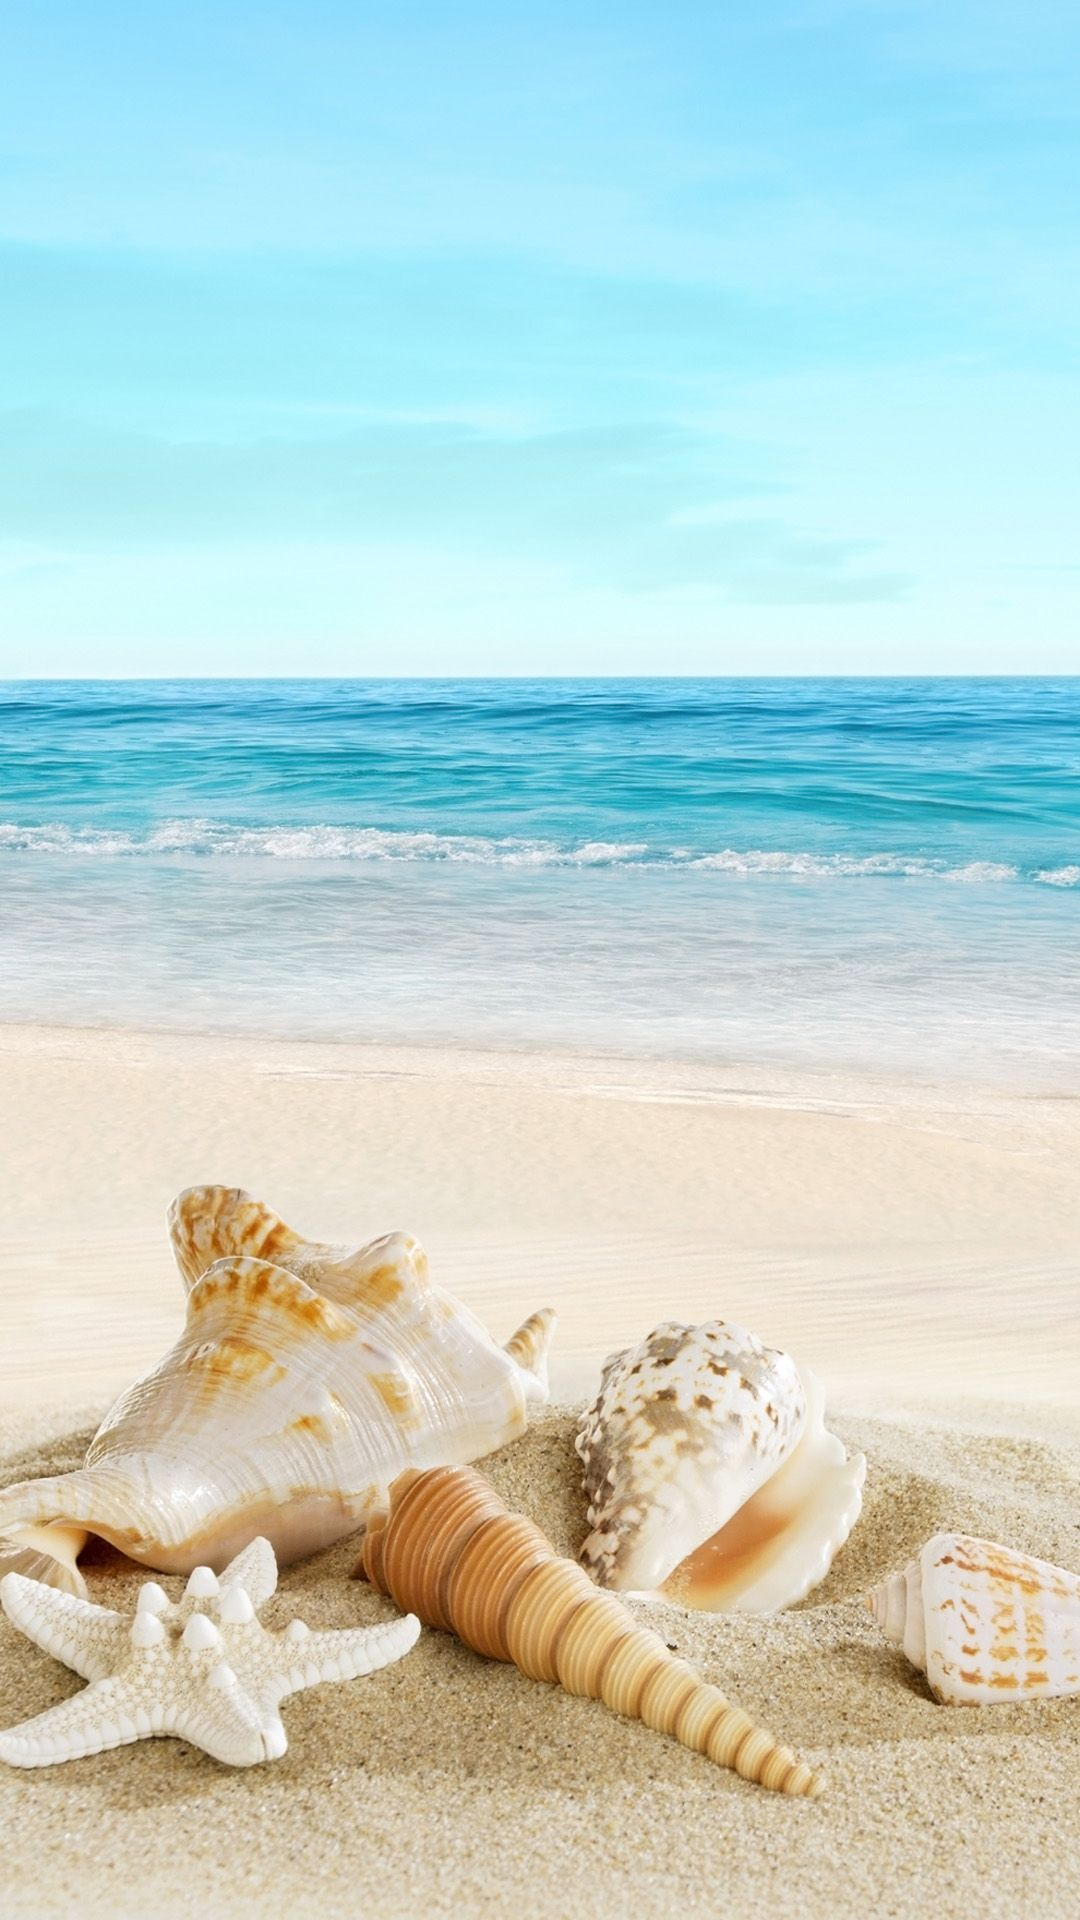 Wallpaper smartphone beach